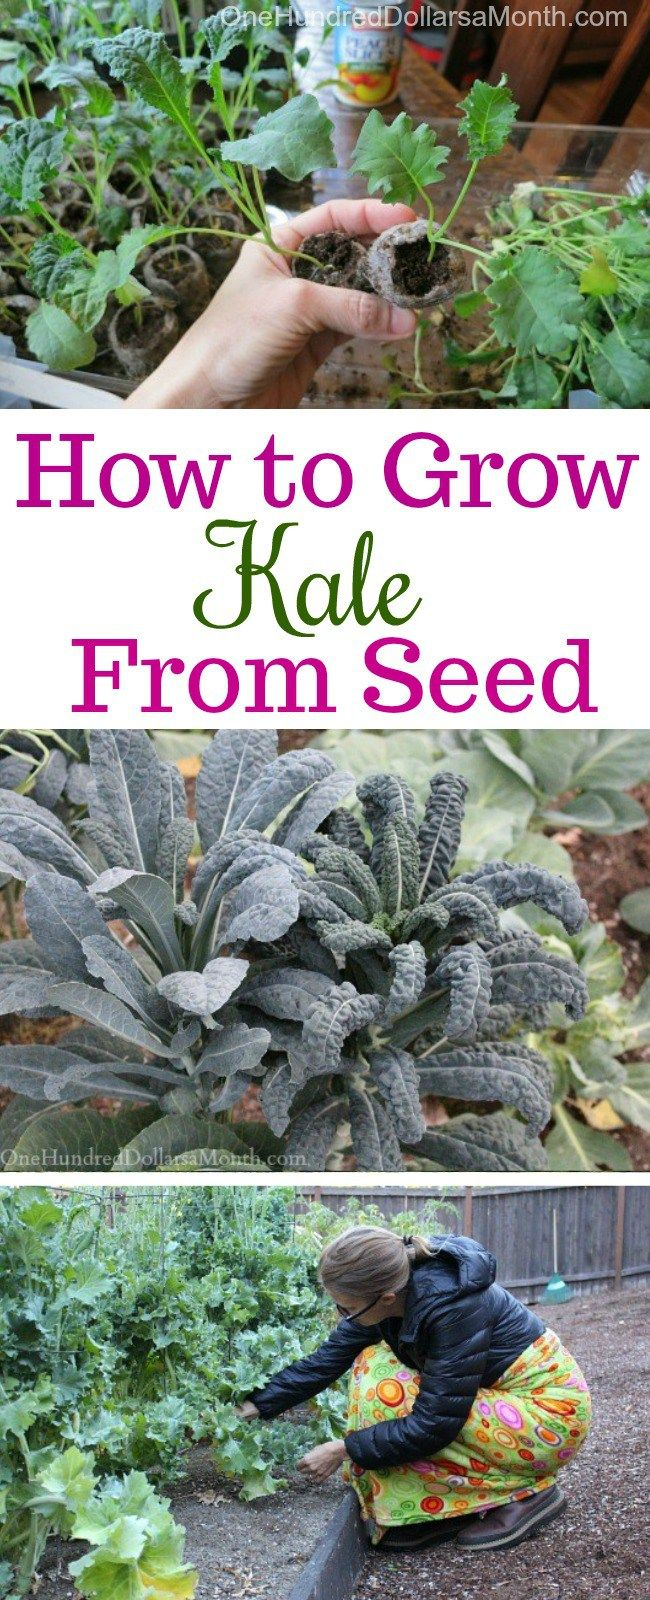 Dig For Your Dinner Growing Kale From Seed With Images